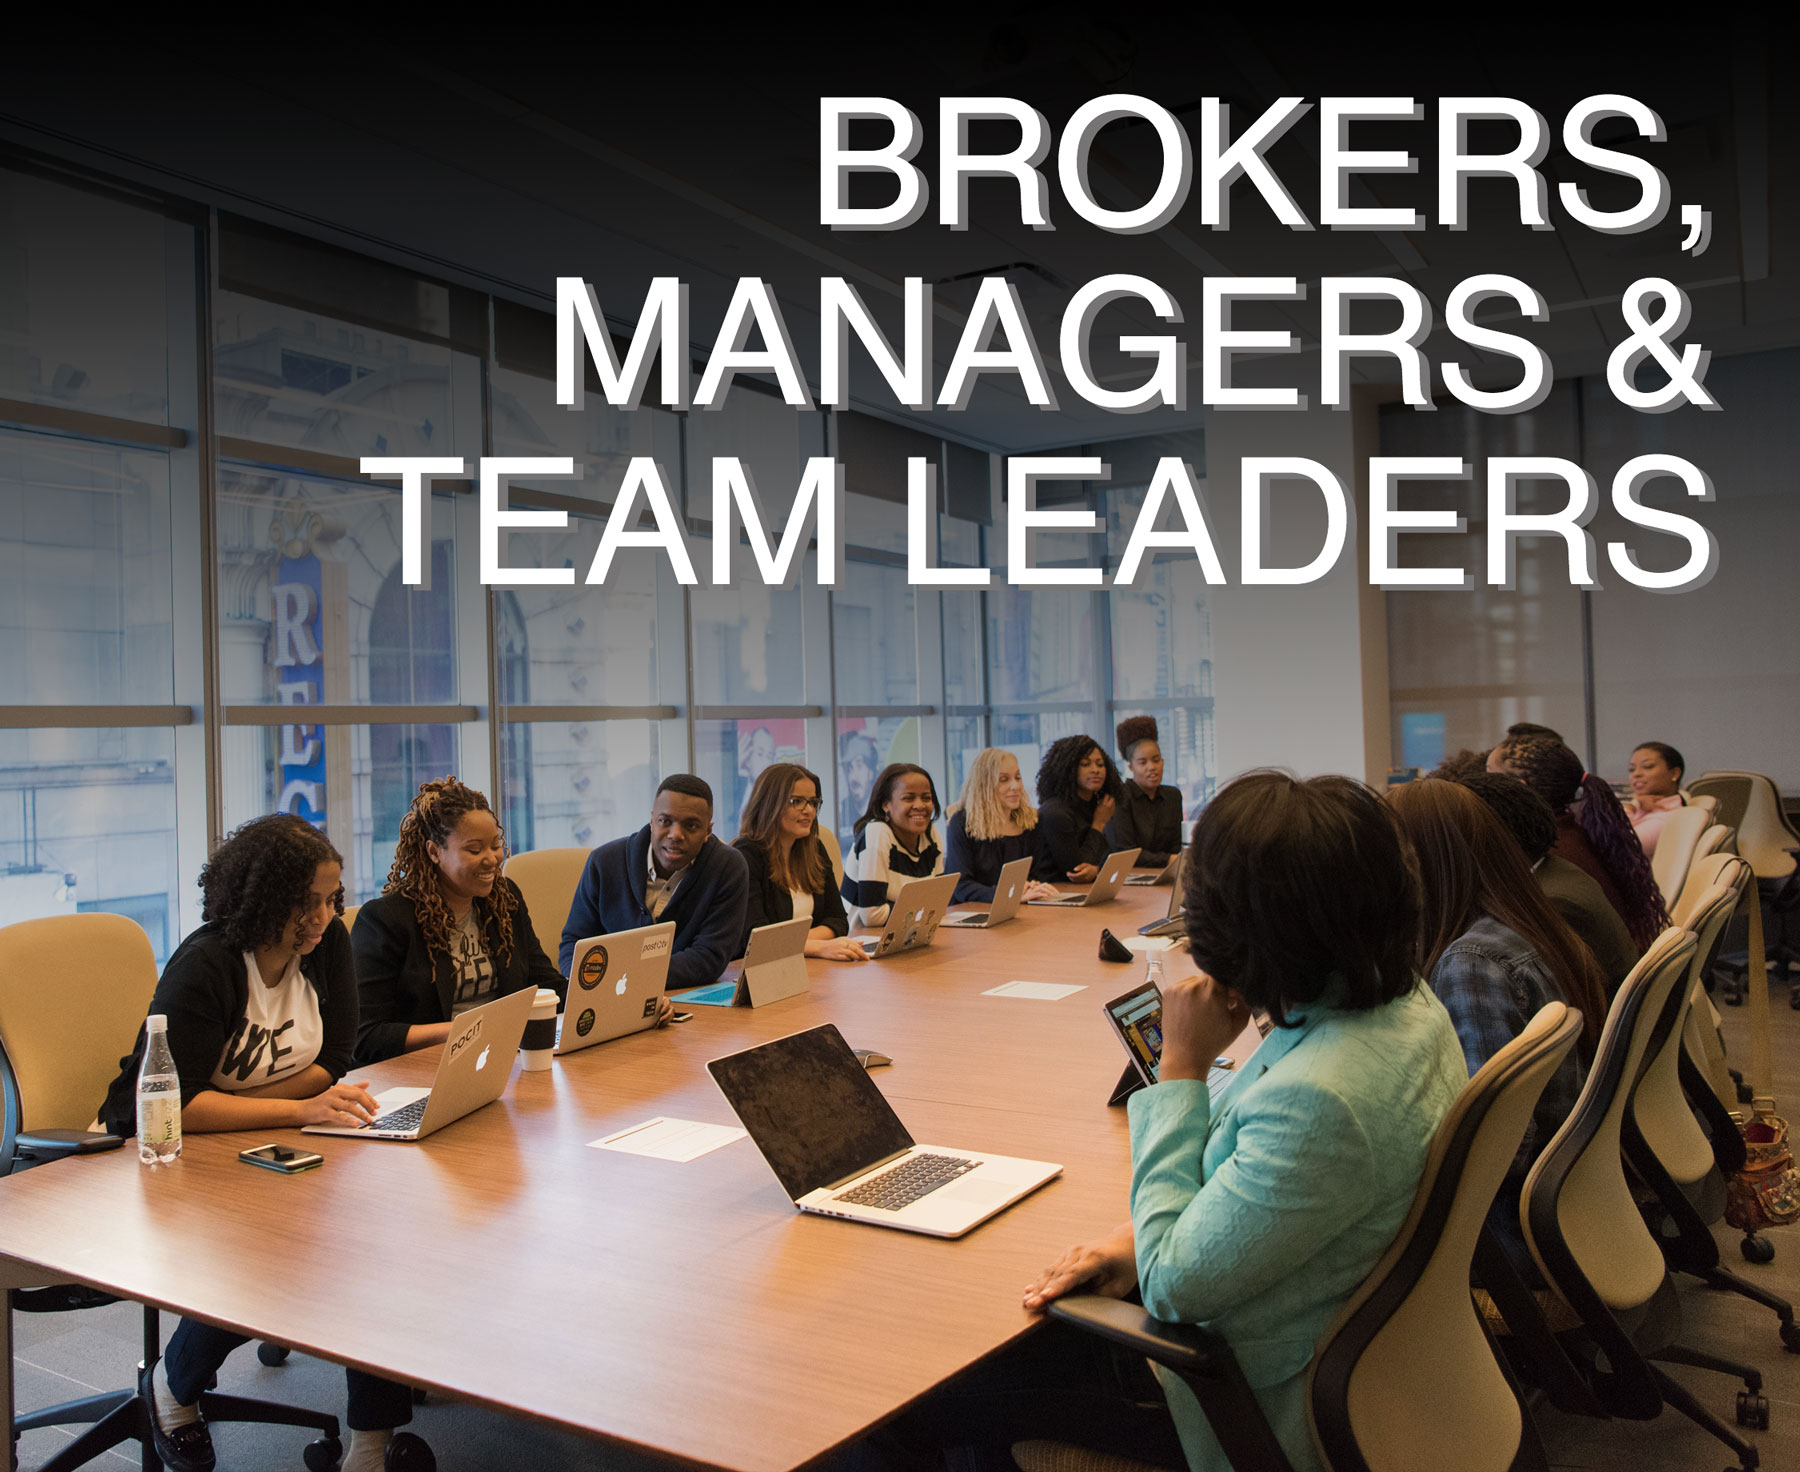 Brokers managers team leaders